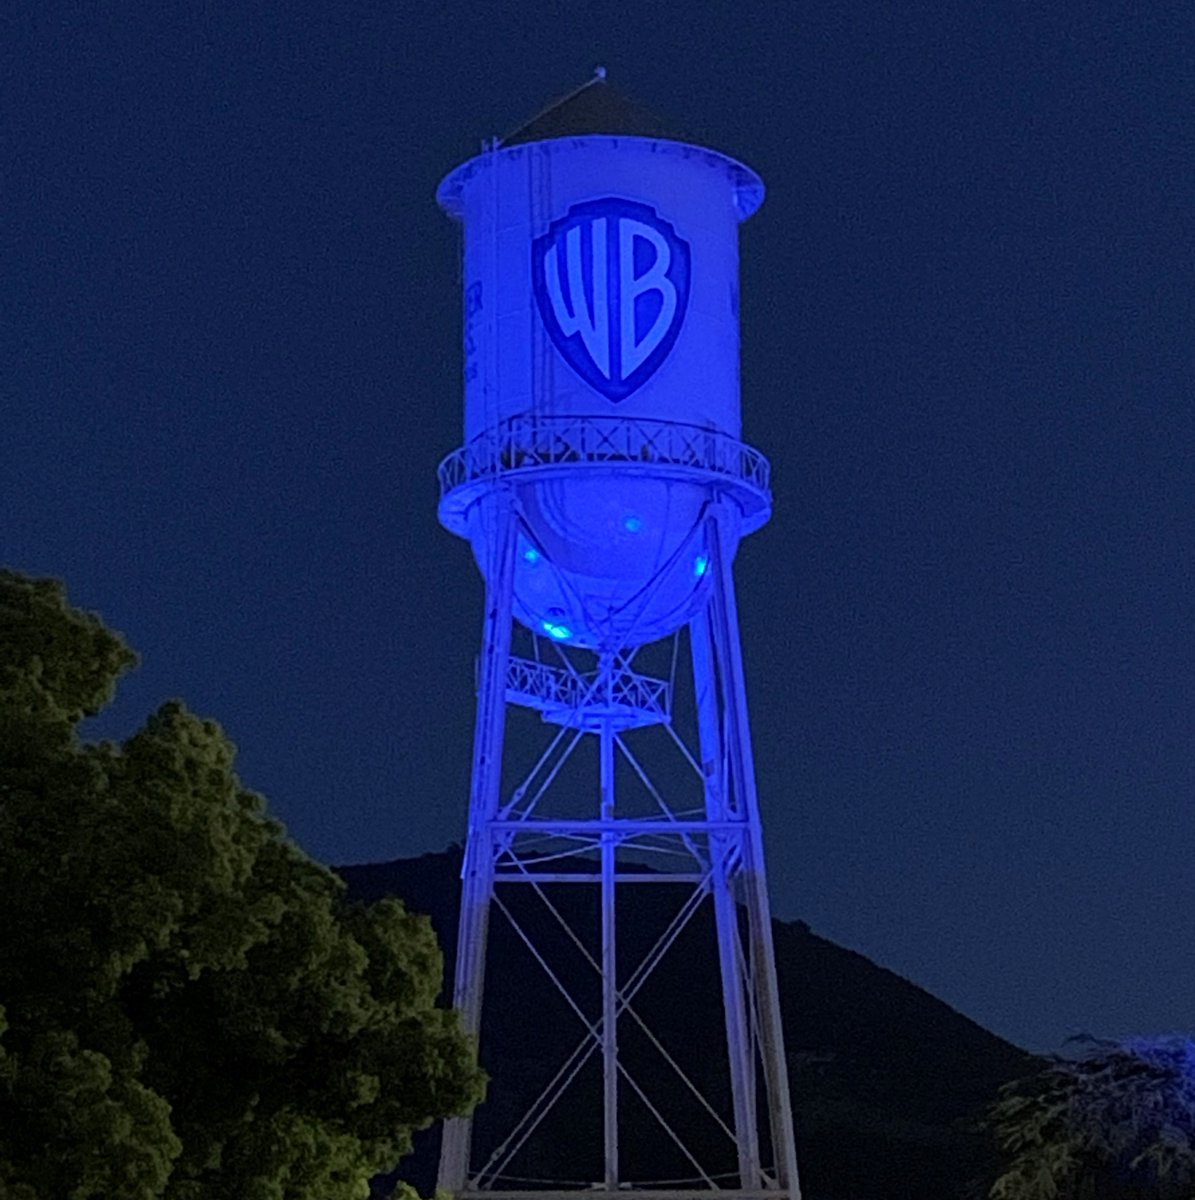 #LightItBlue WB